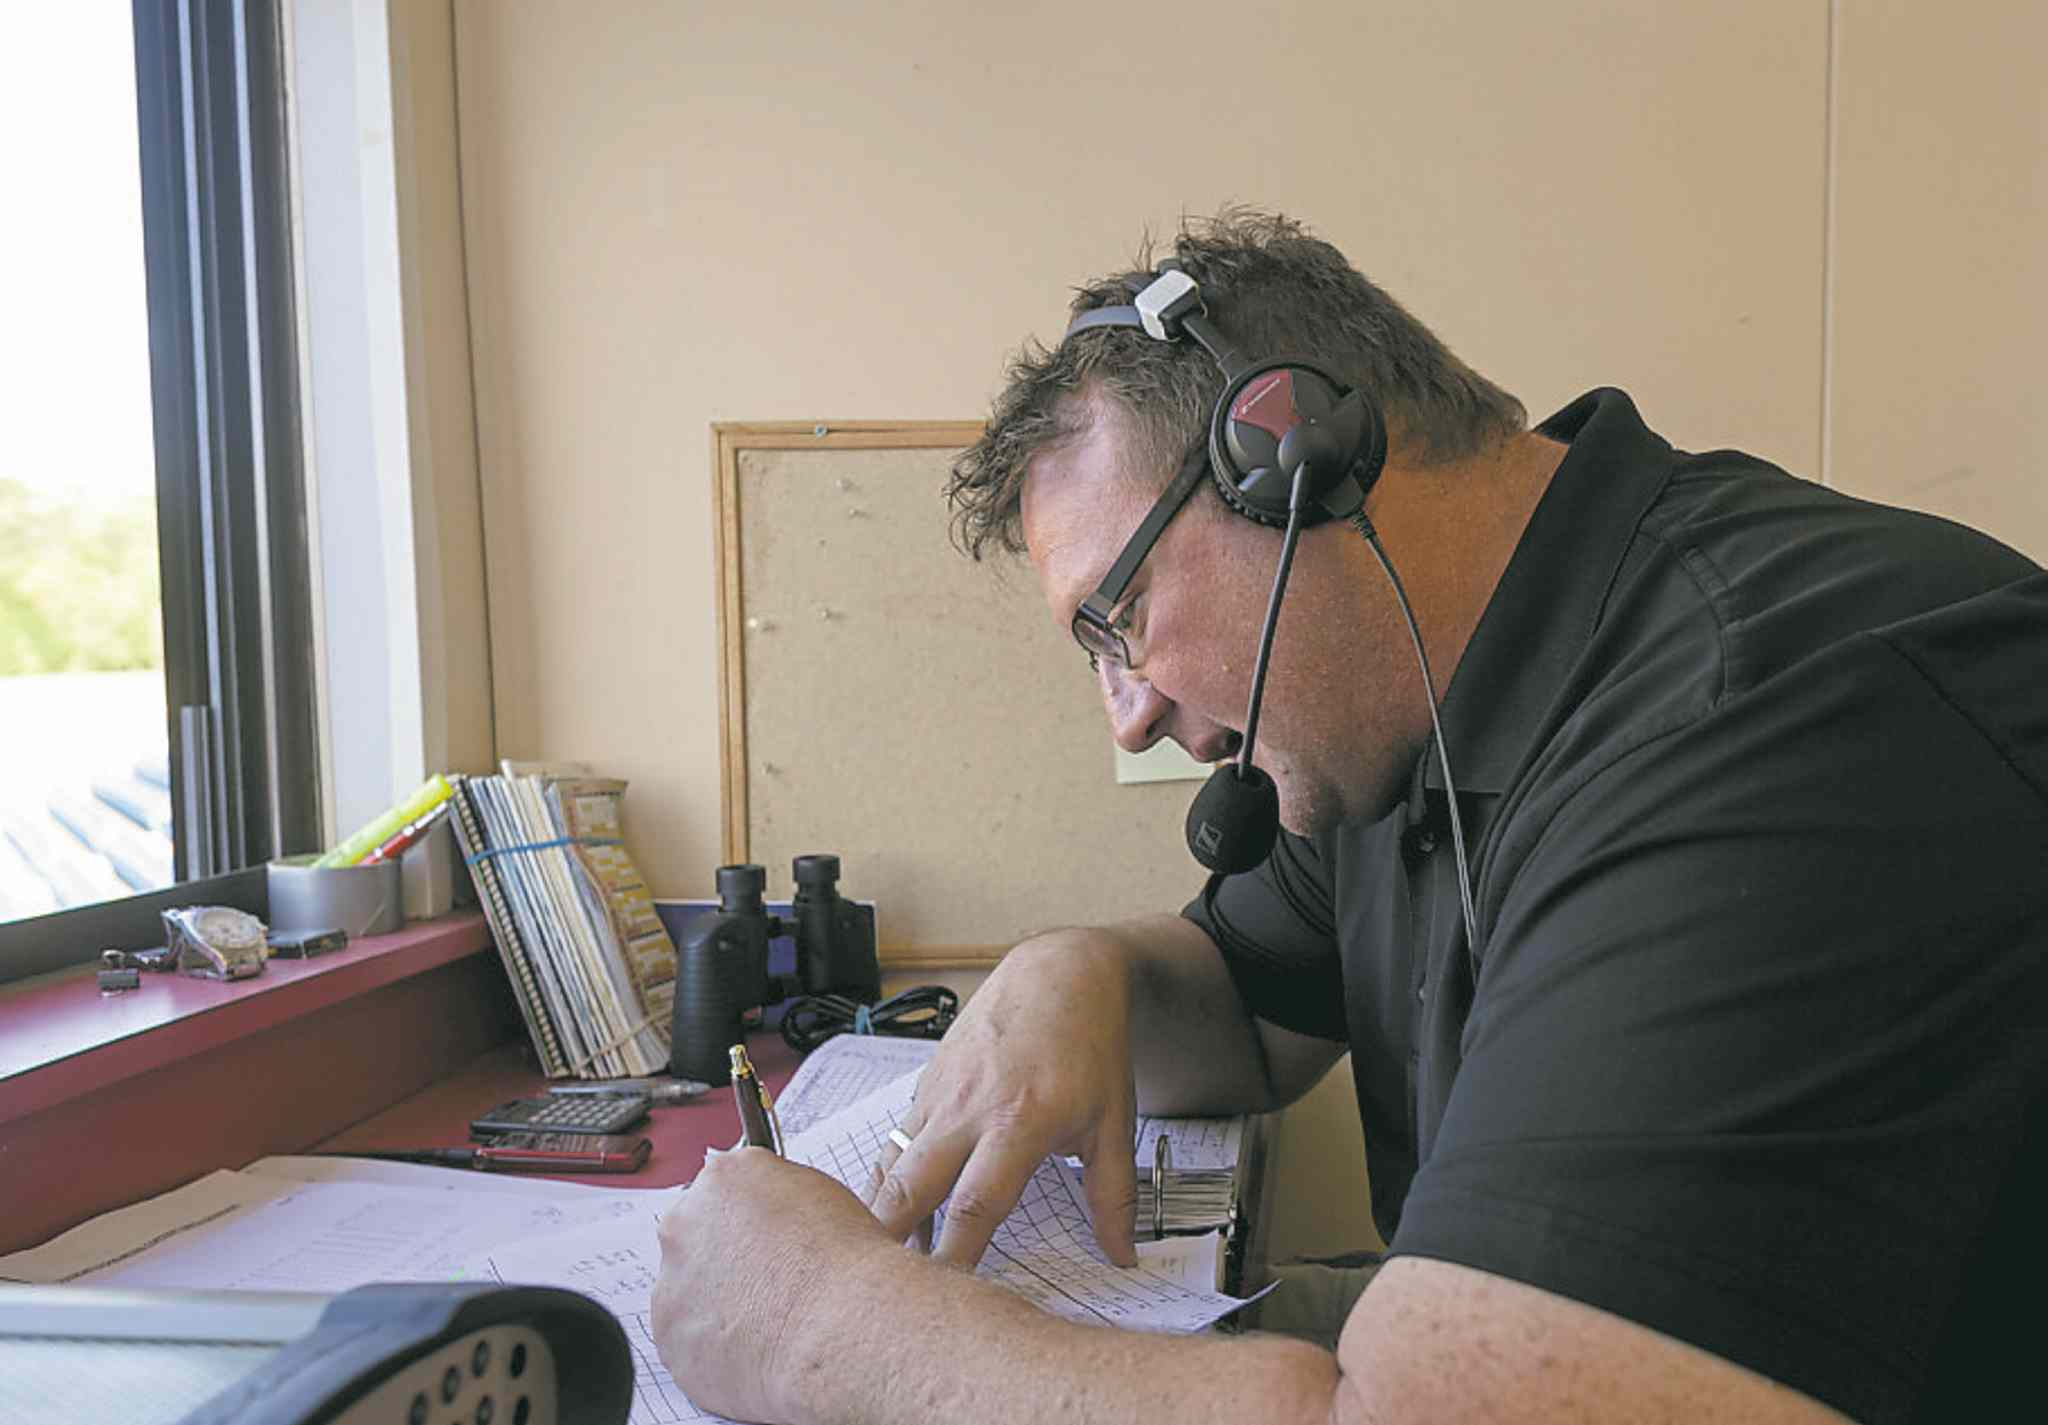 Paul Edmonds spent 19 years as the voice of the Goldeyes before moving to TSN's morning show.